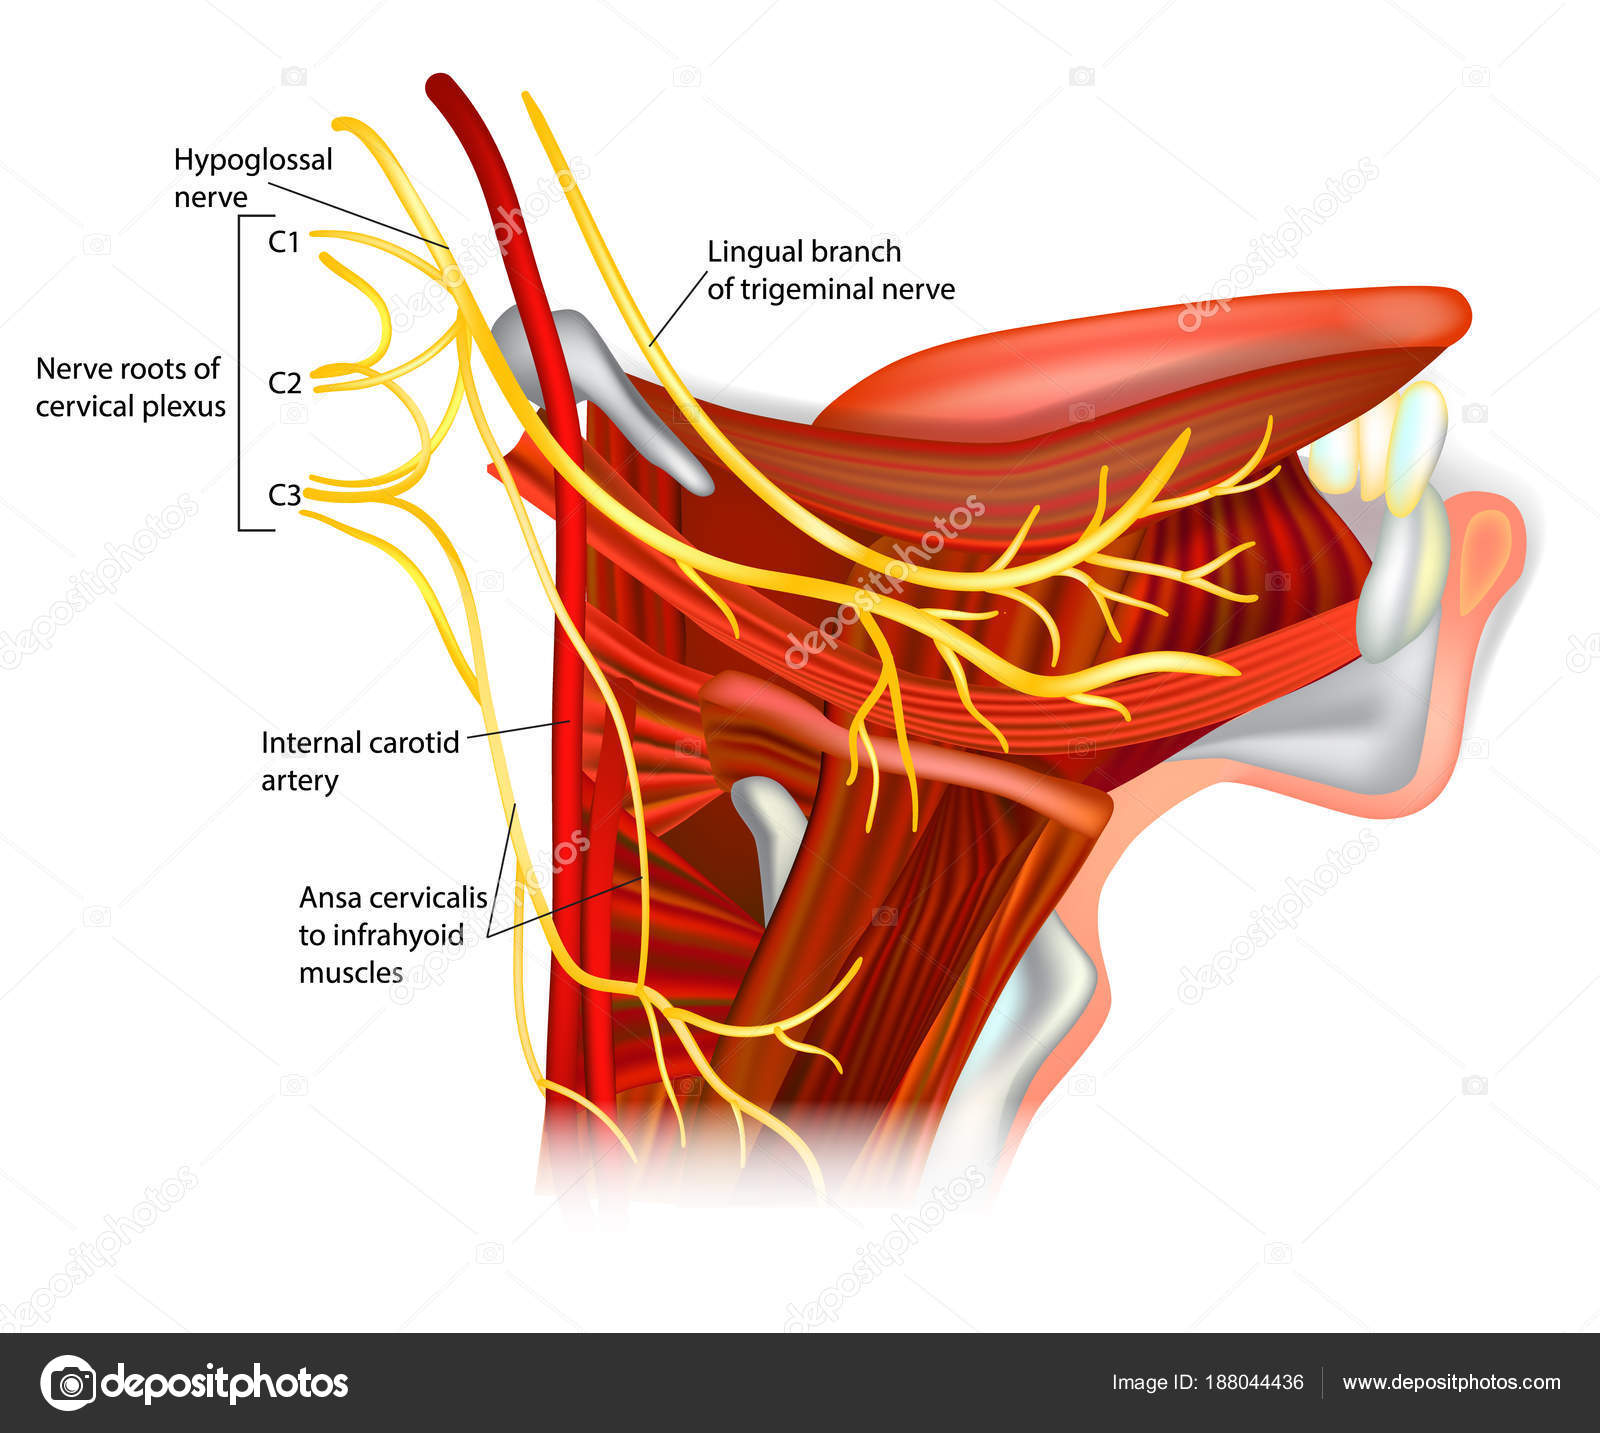 Cranial Nerves Hypoglossal Nerve Ansa Hypoglossi Muscles Supplied ...